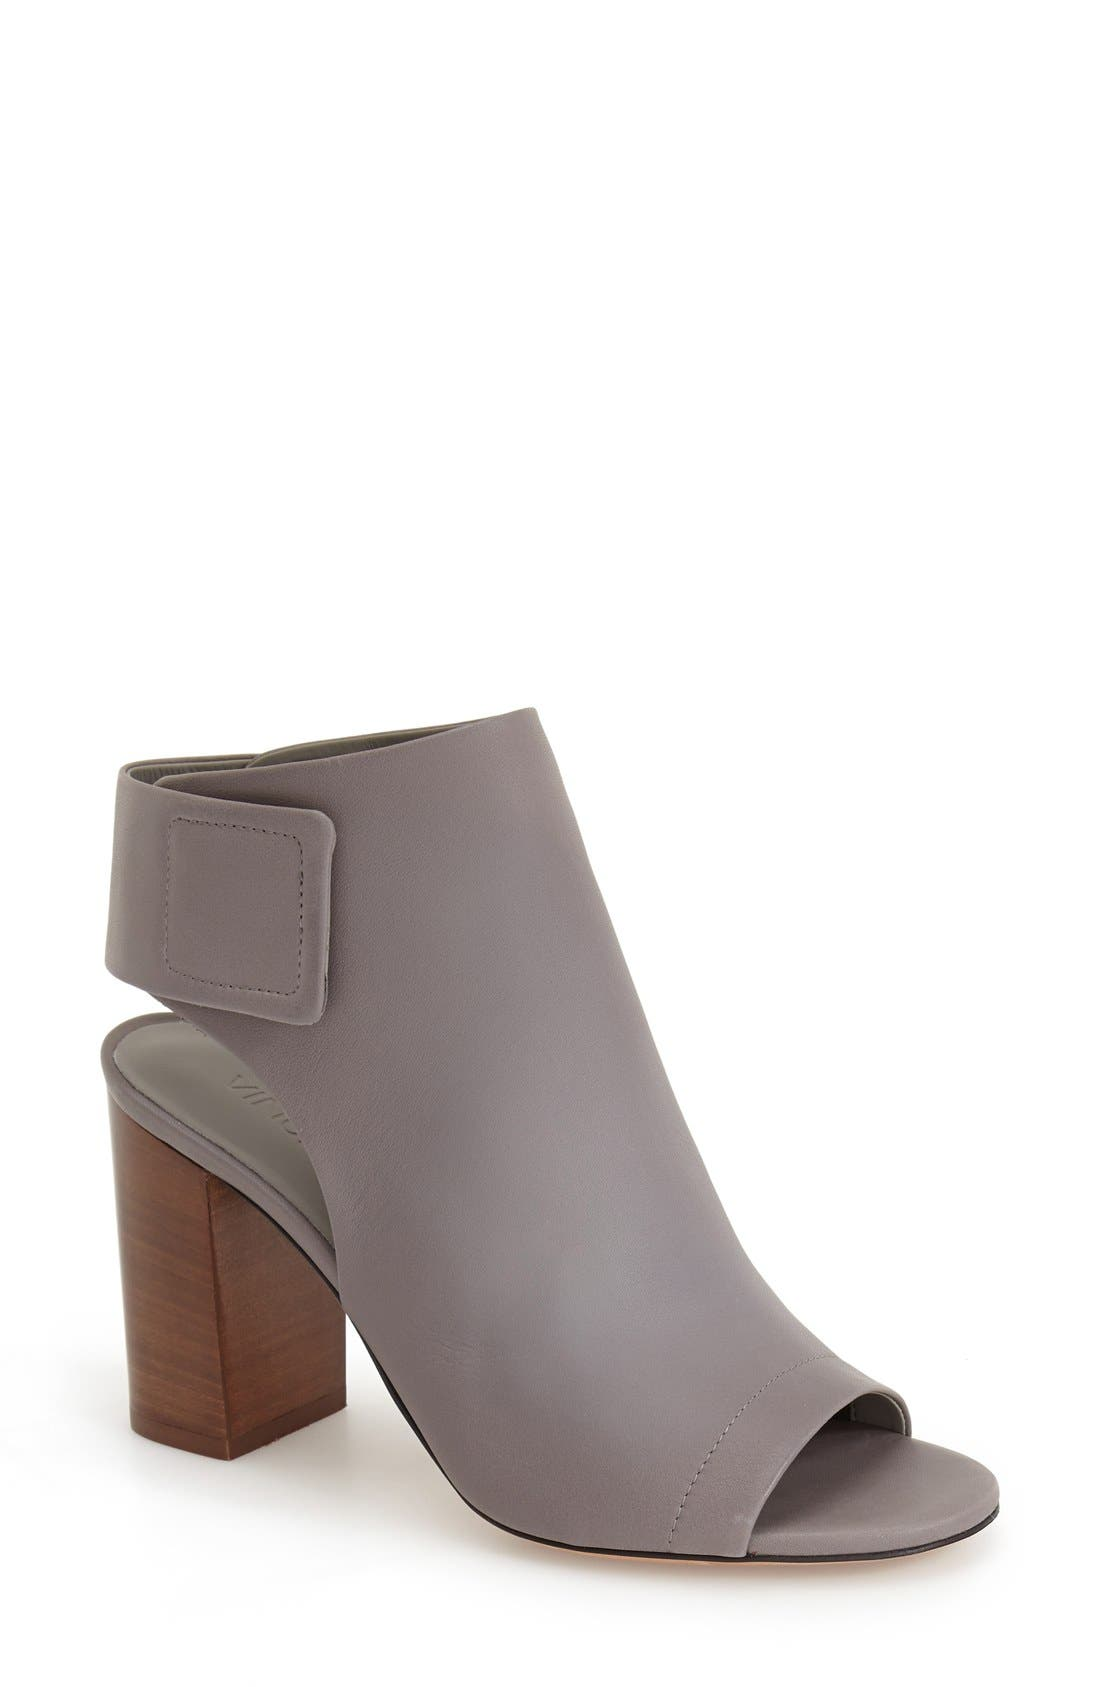 Main Image - Vince 'Faye' Leather Bootie (Women)